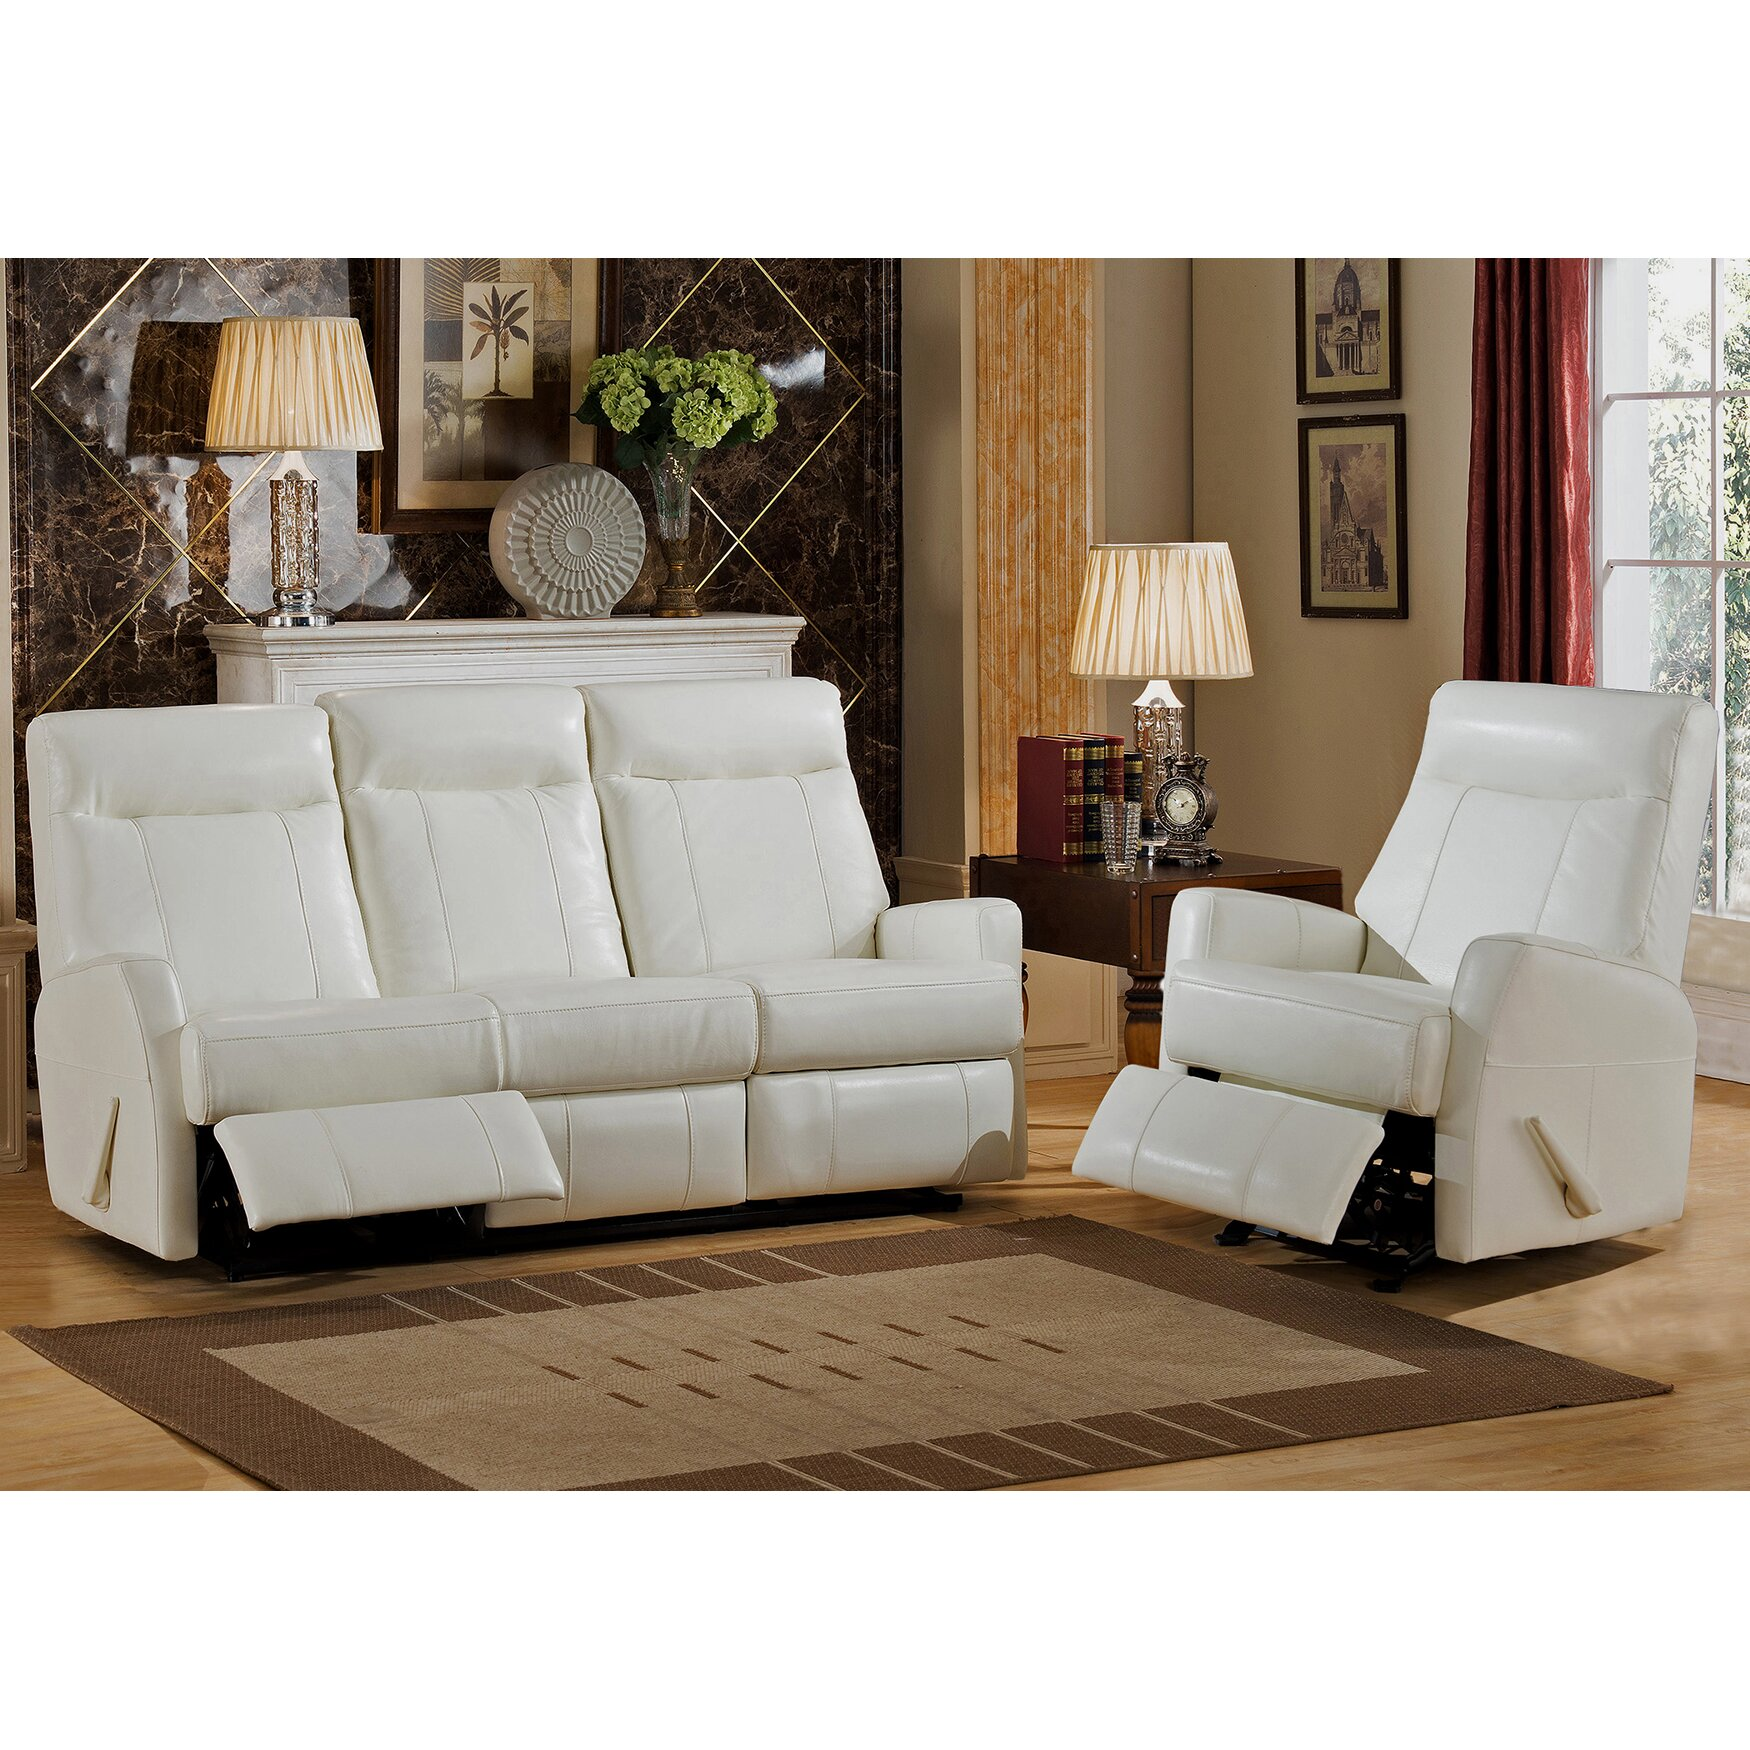 Amax toledo 2 piece leather living room set wayfair Living room furniture toledo ohio